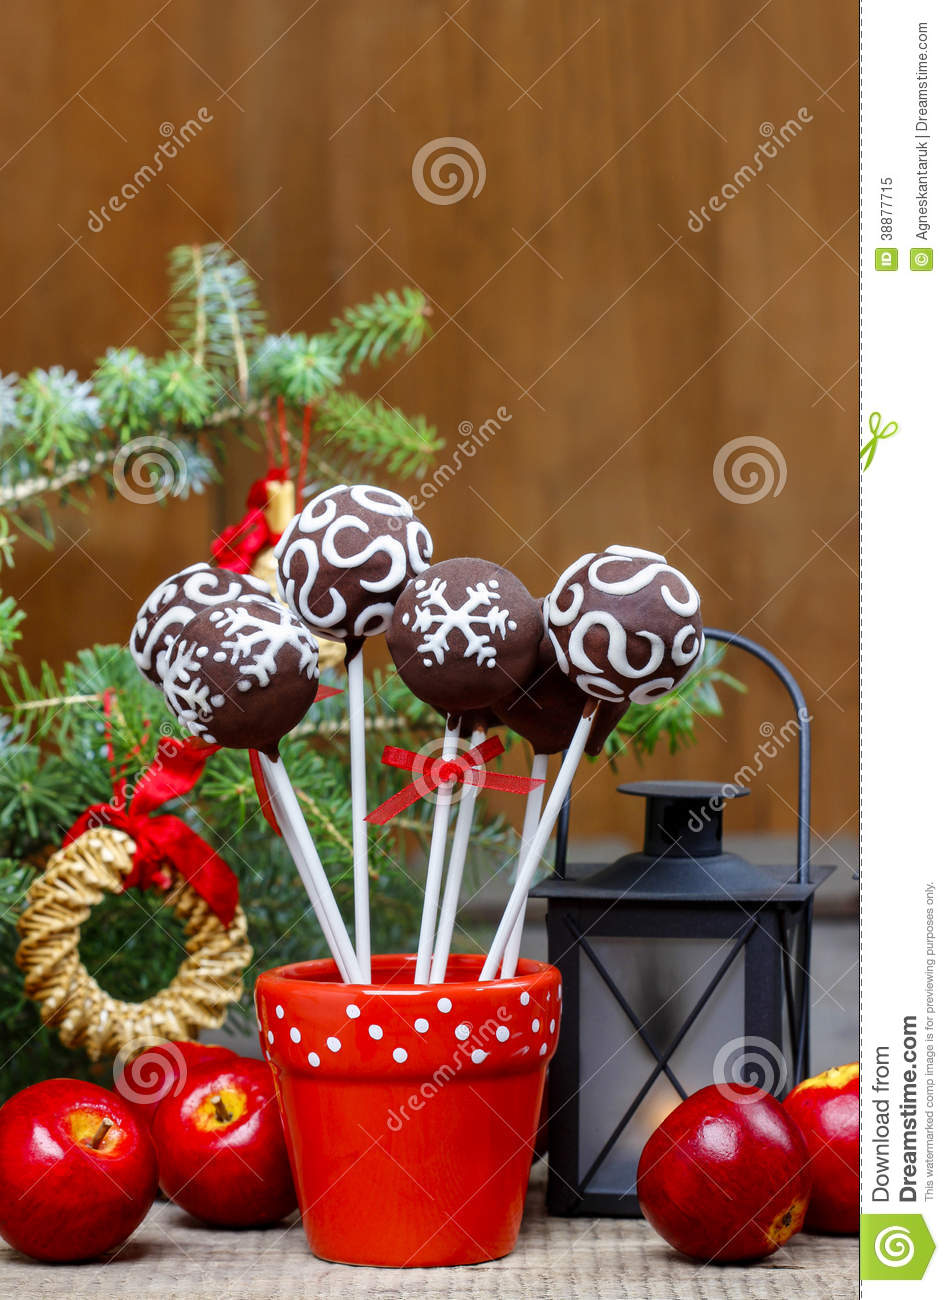 Chocolate Balls Cake Decoration : Chocolate Cake Pops In Christmas Setting Stock Image ...